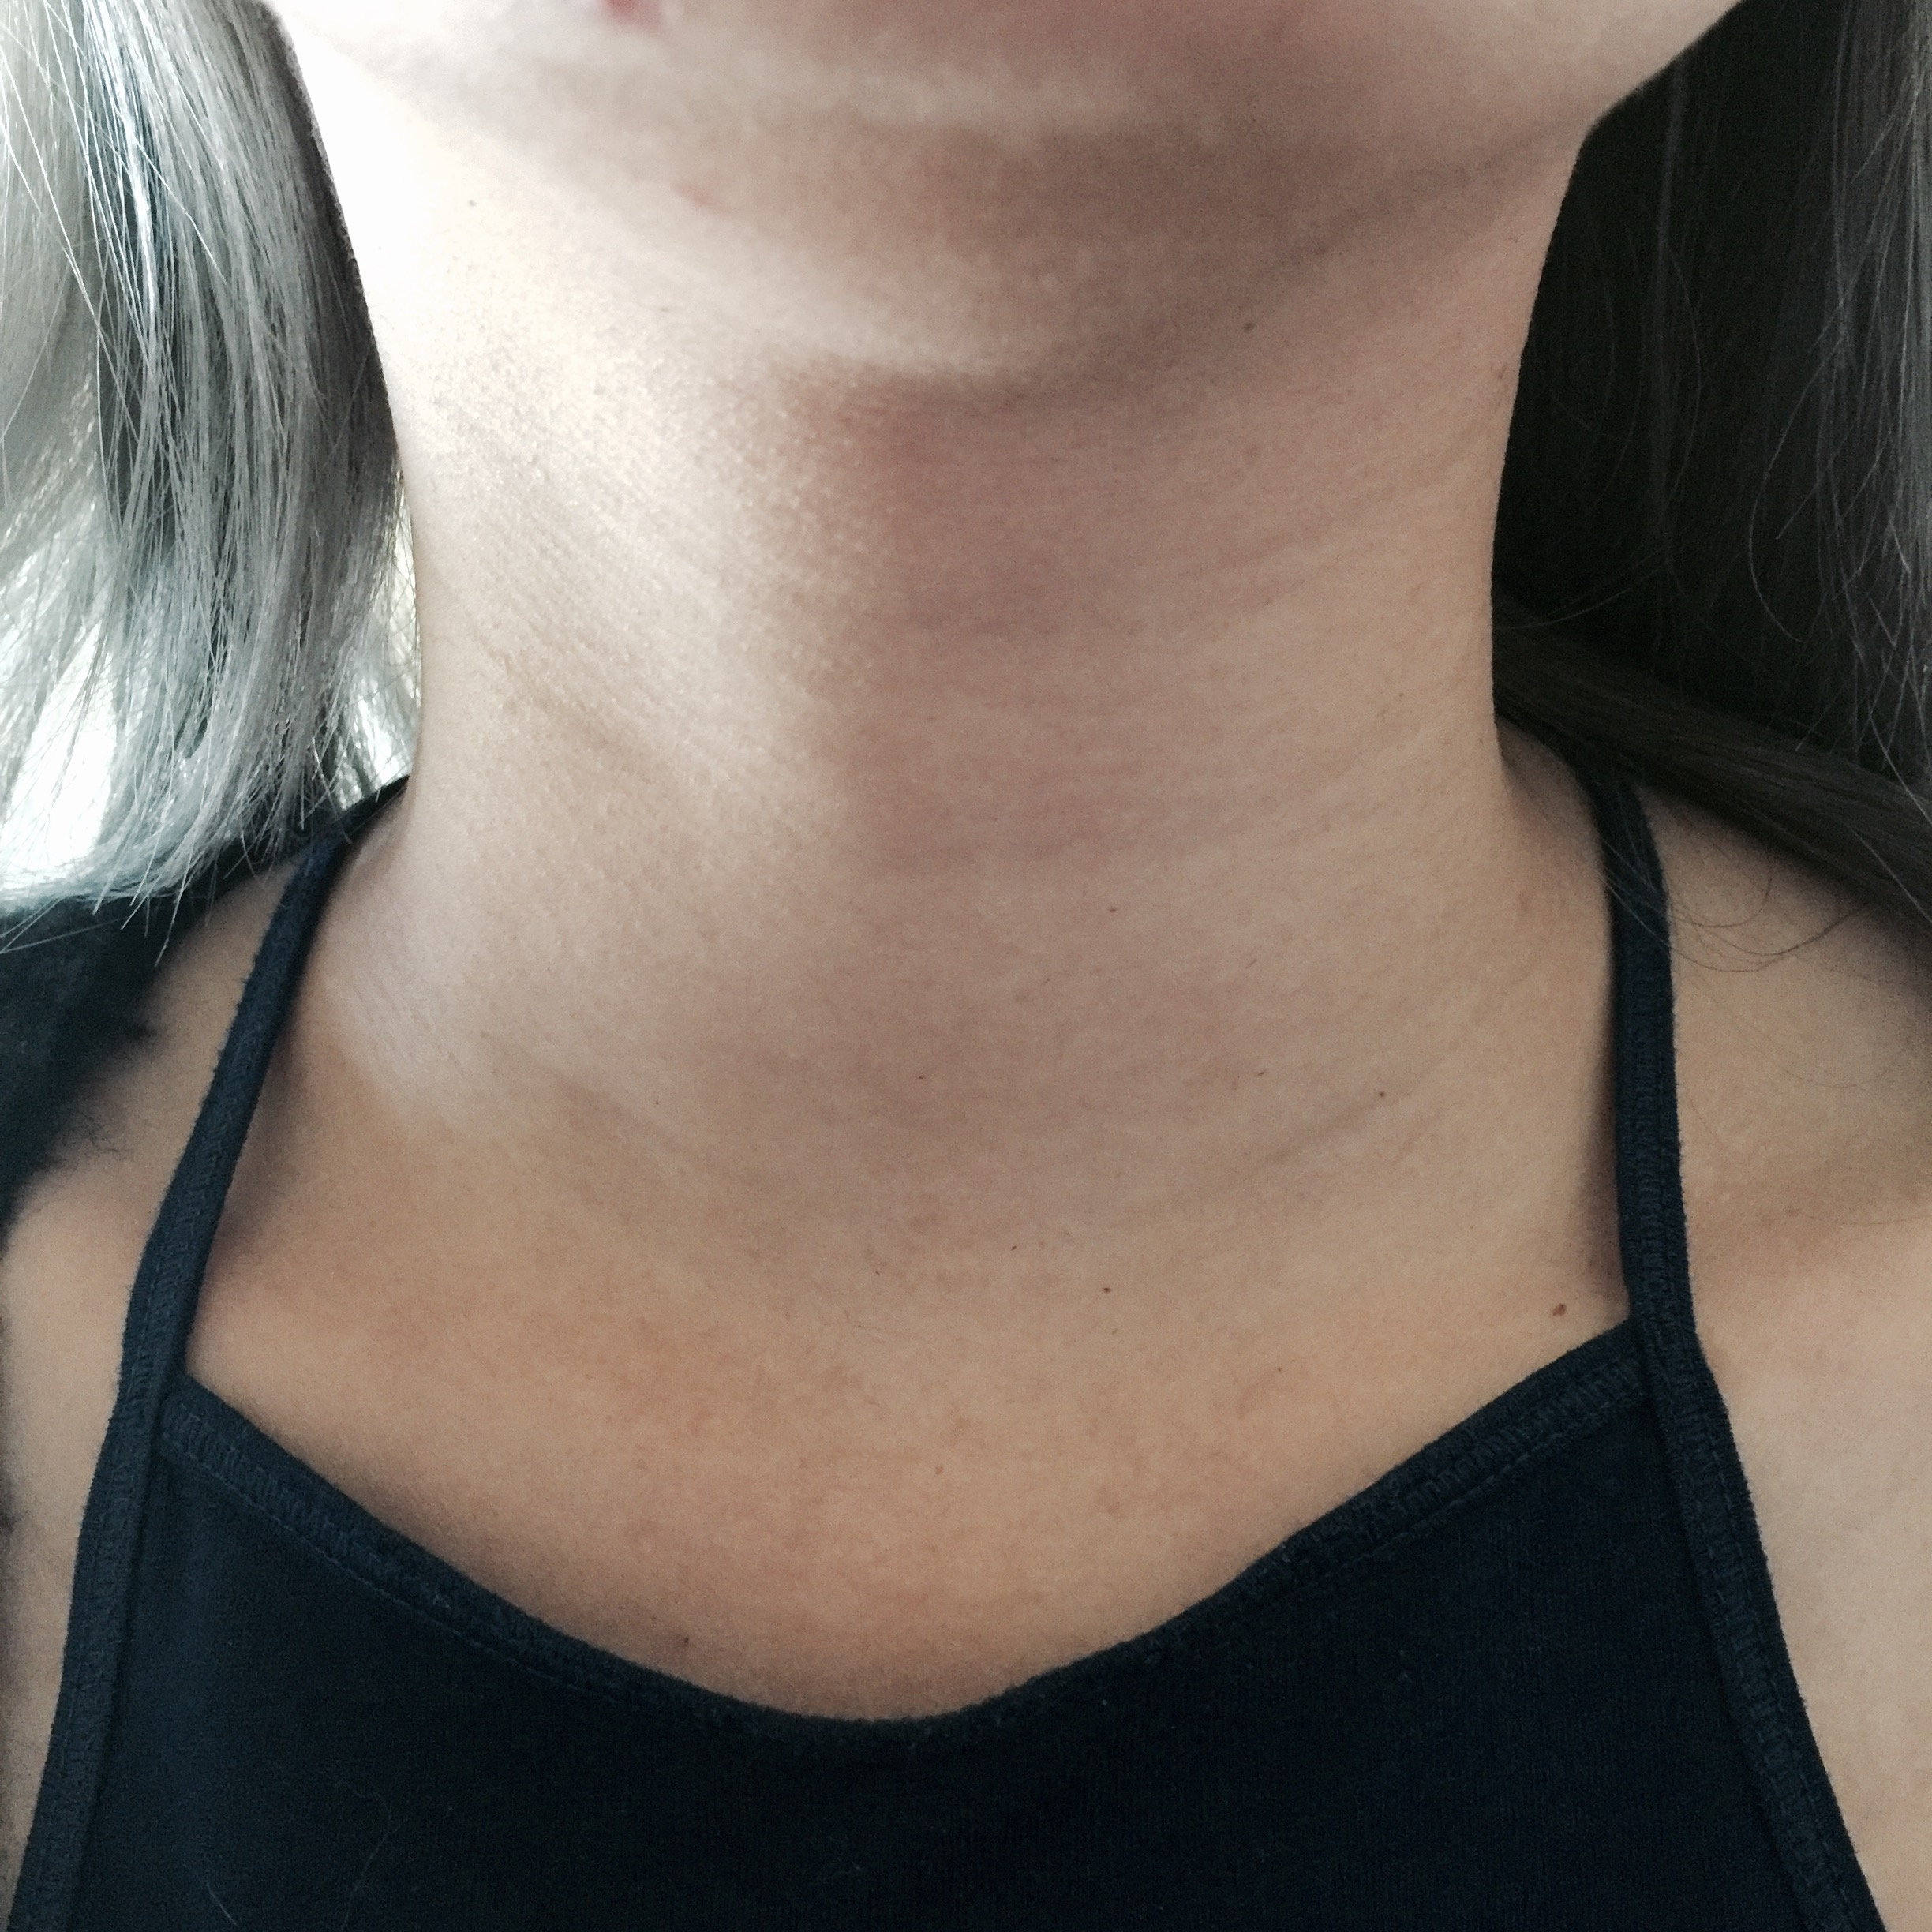 AFTER THE PATCH. My neck is slightly brighter, wrinkles aren't as defined as before.